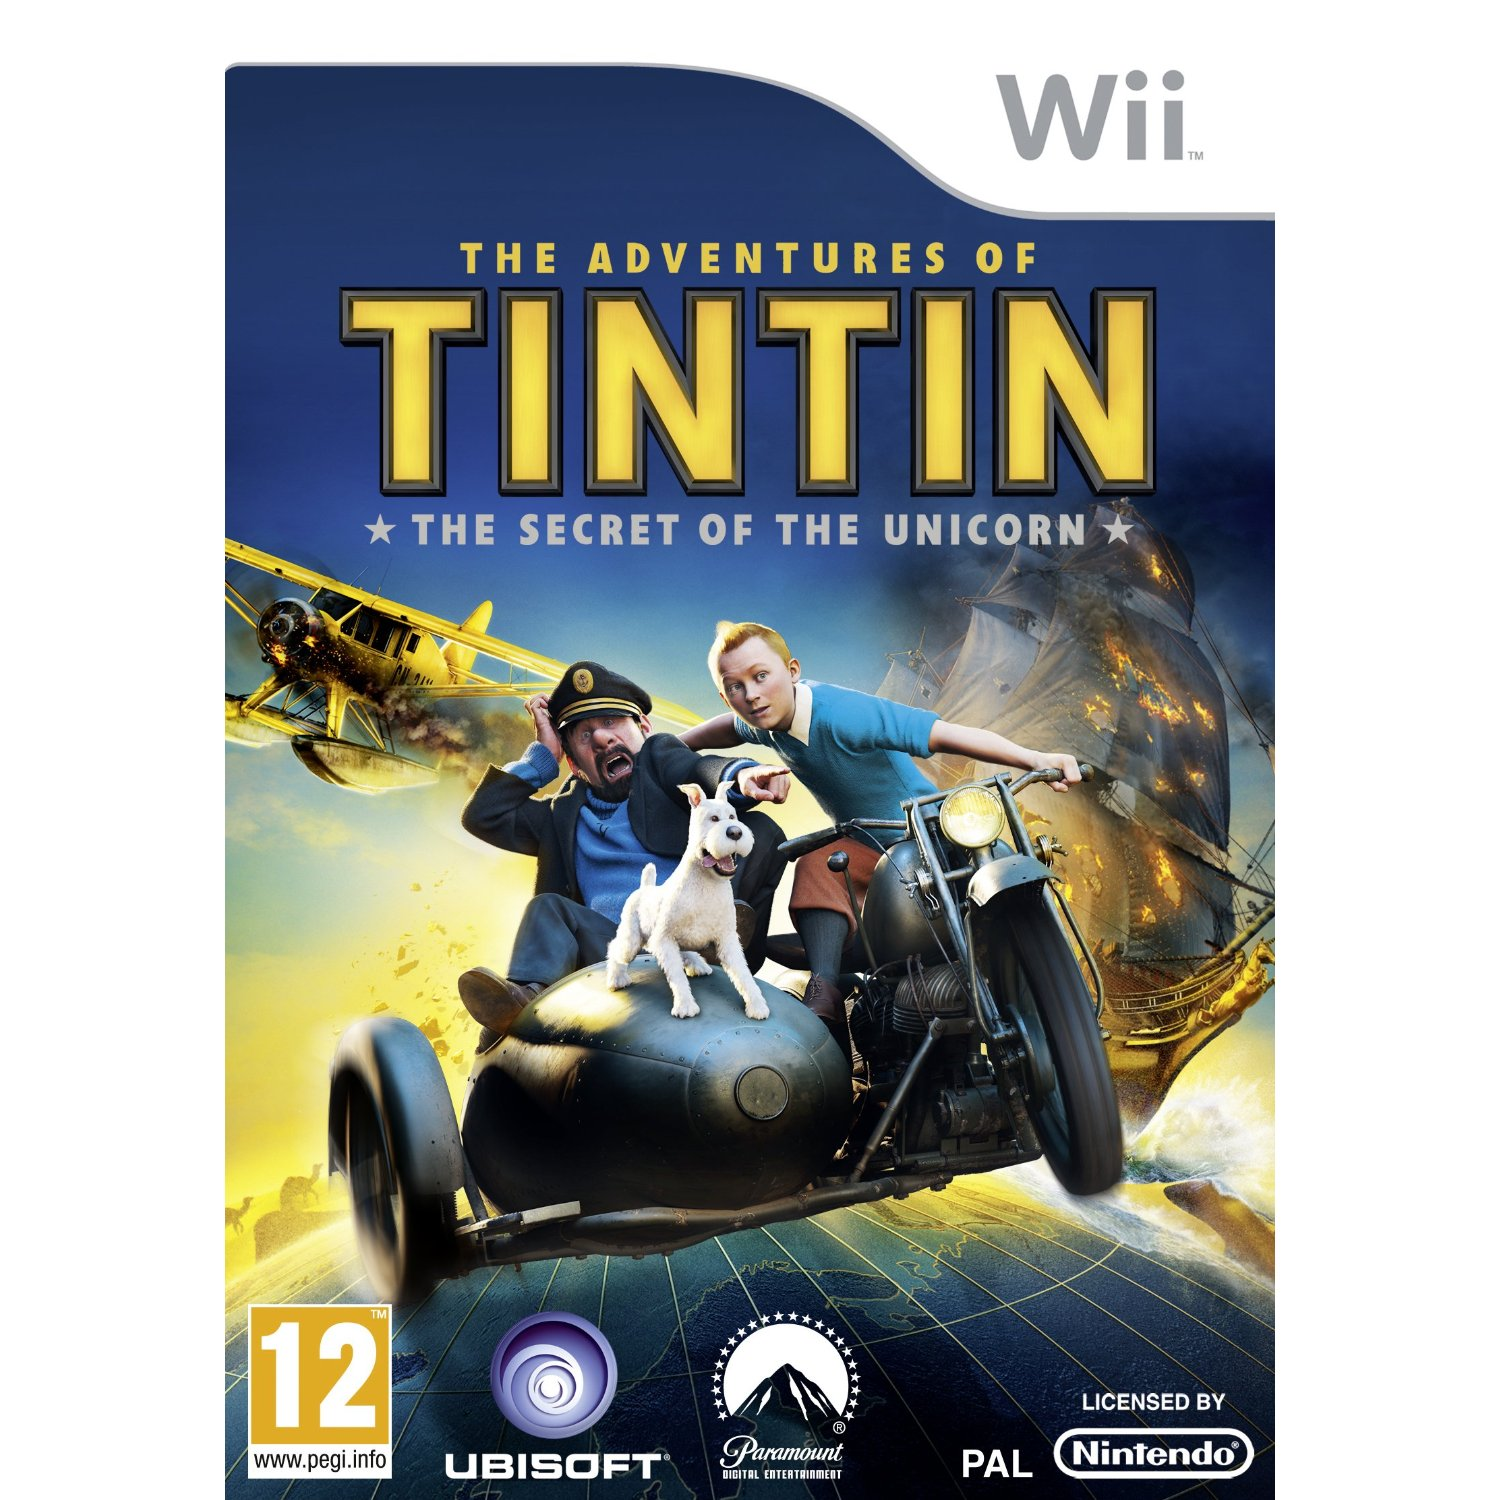 The Adventures of Tintin The Secret of the Unicorn Wii